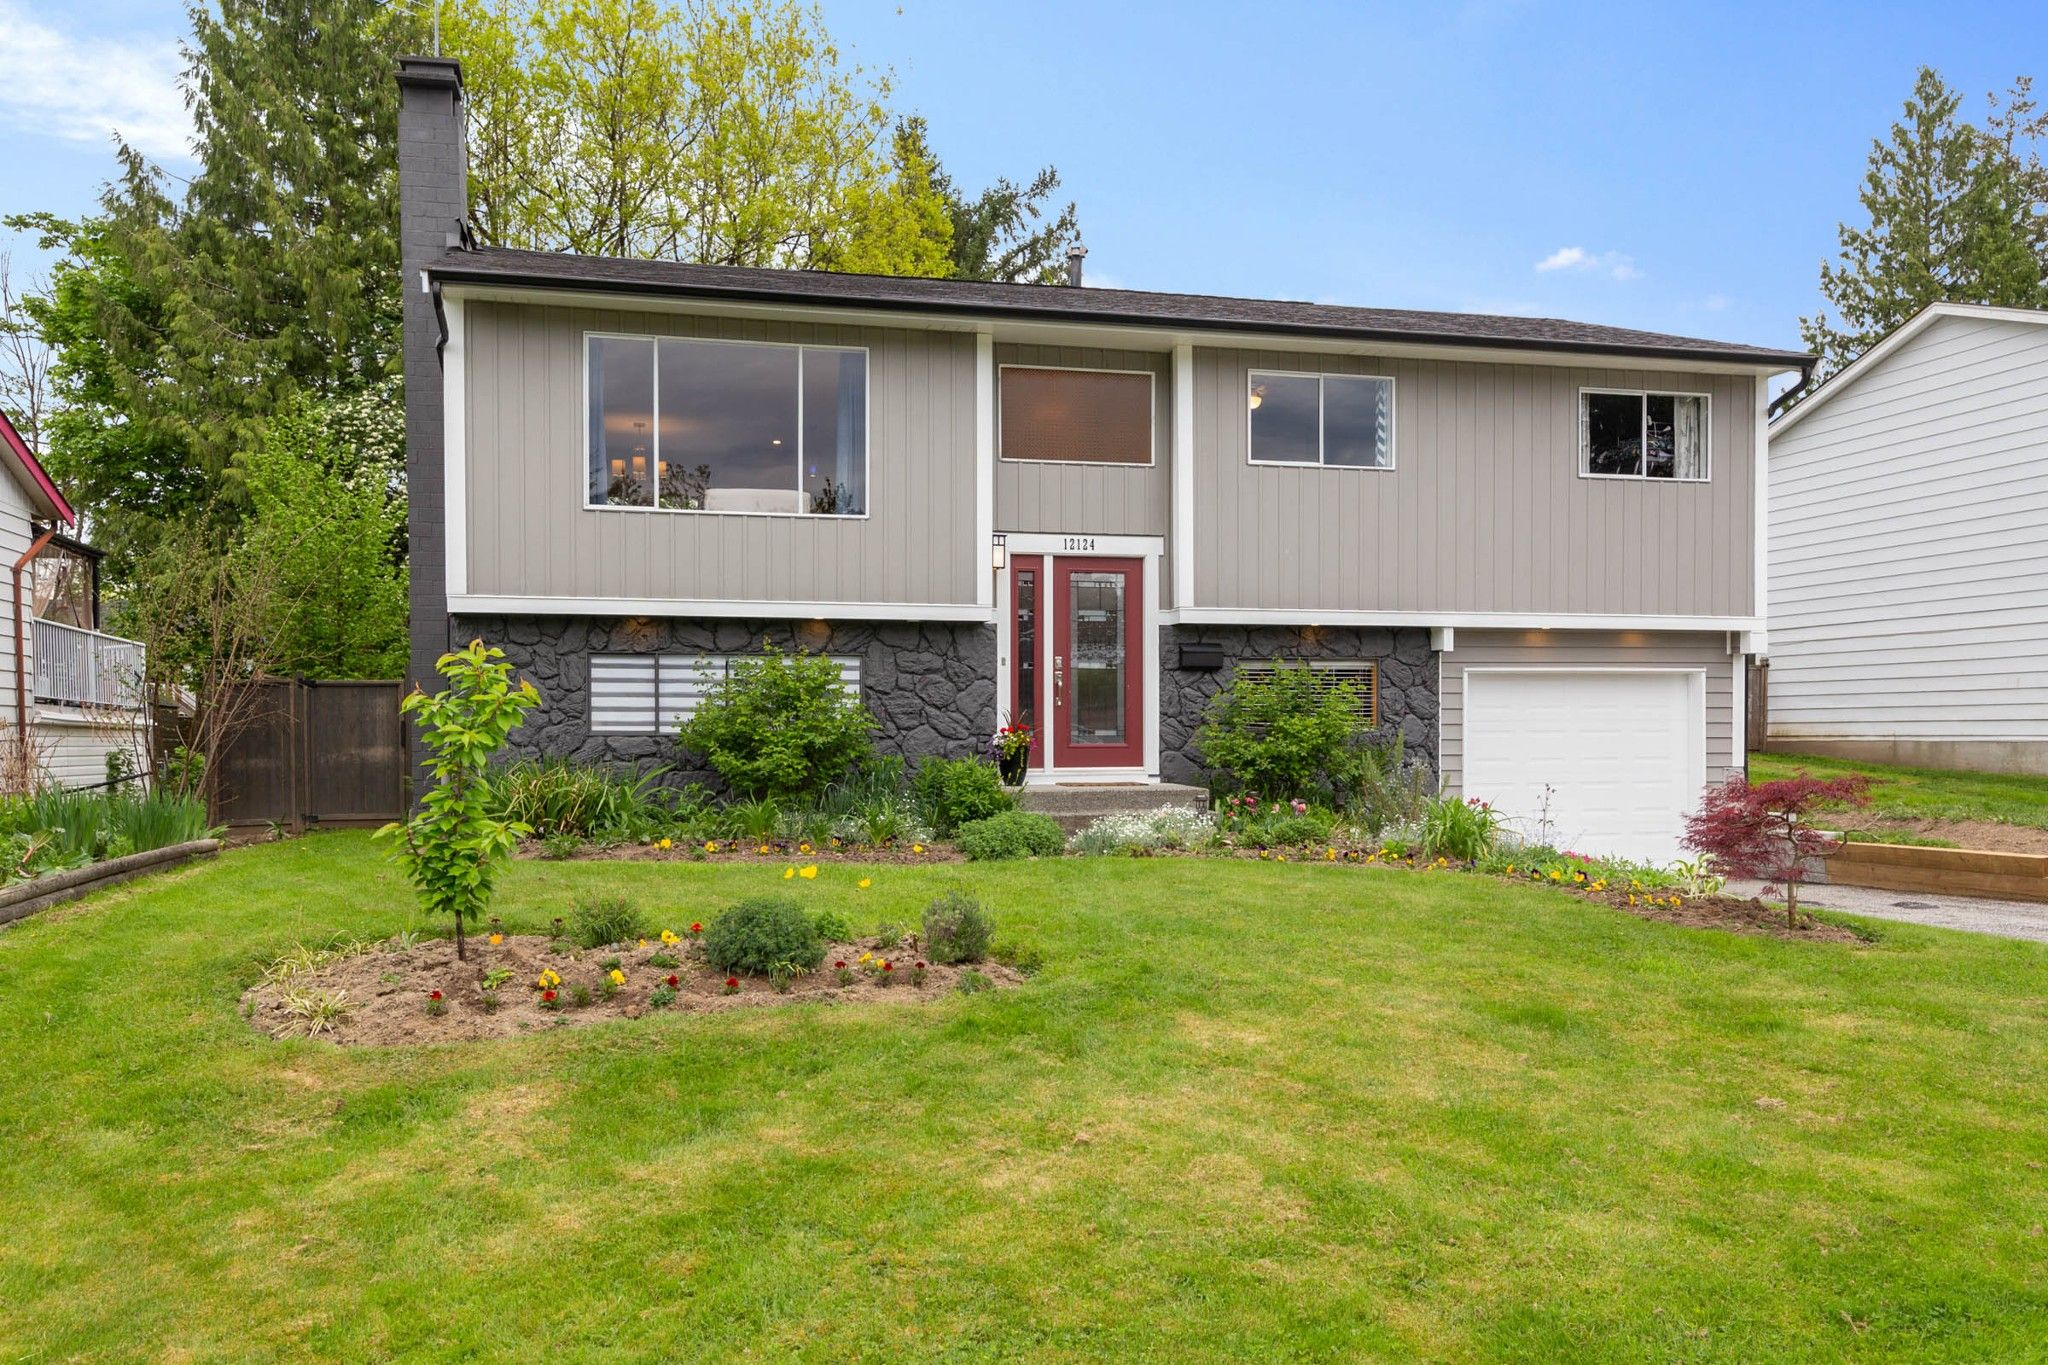 Main Photo: 12124 GEE Street in Maple Ridge: East Central House for sale : MLS®# R2579289